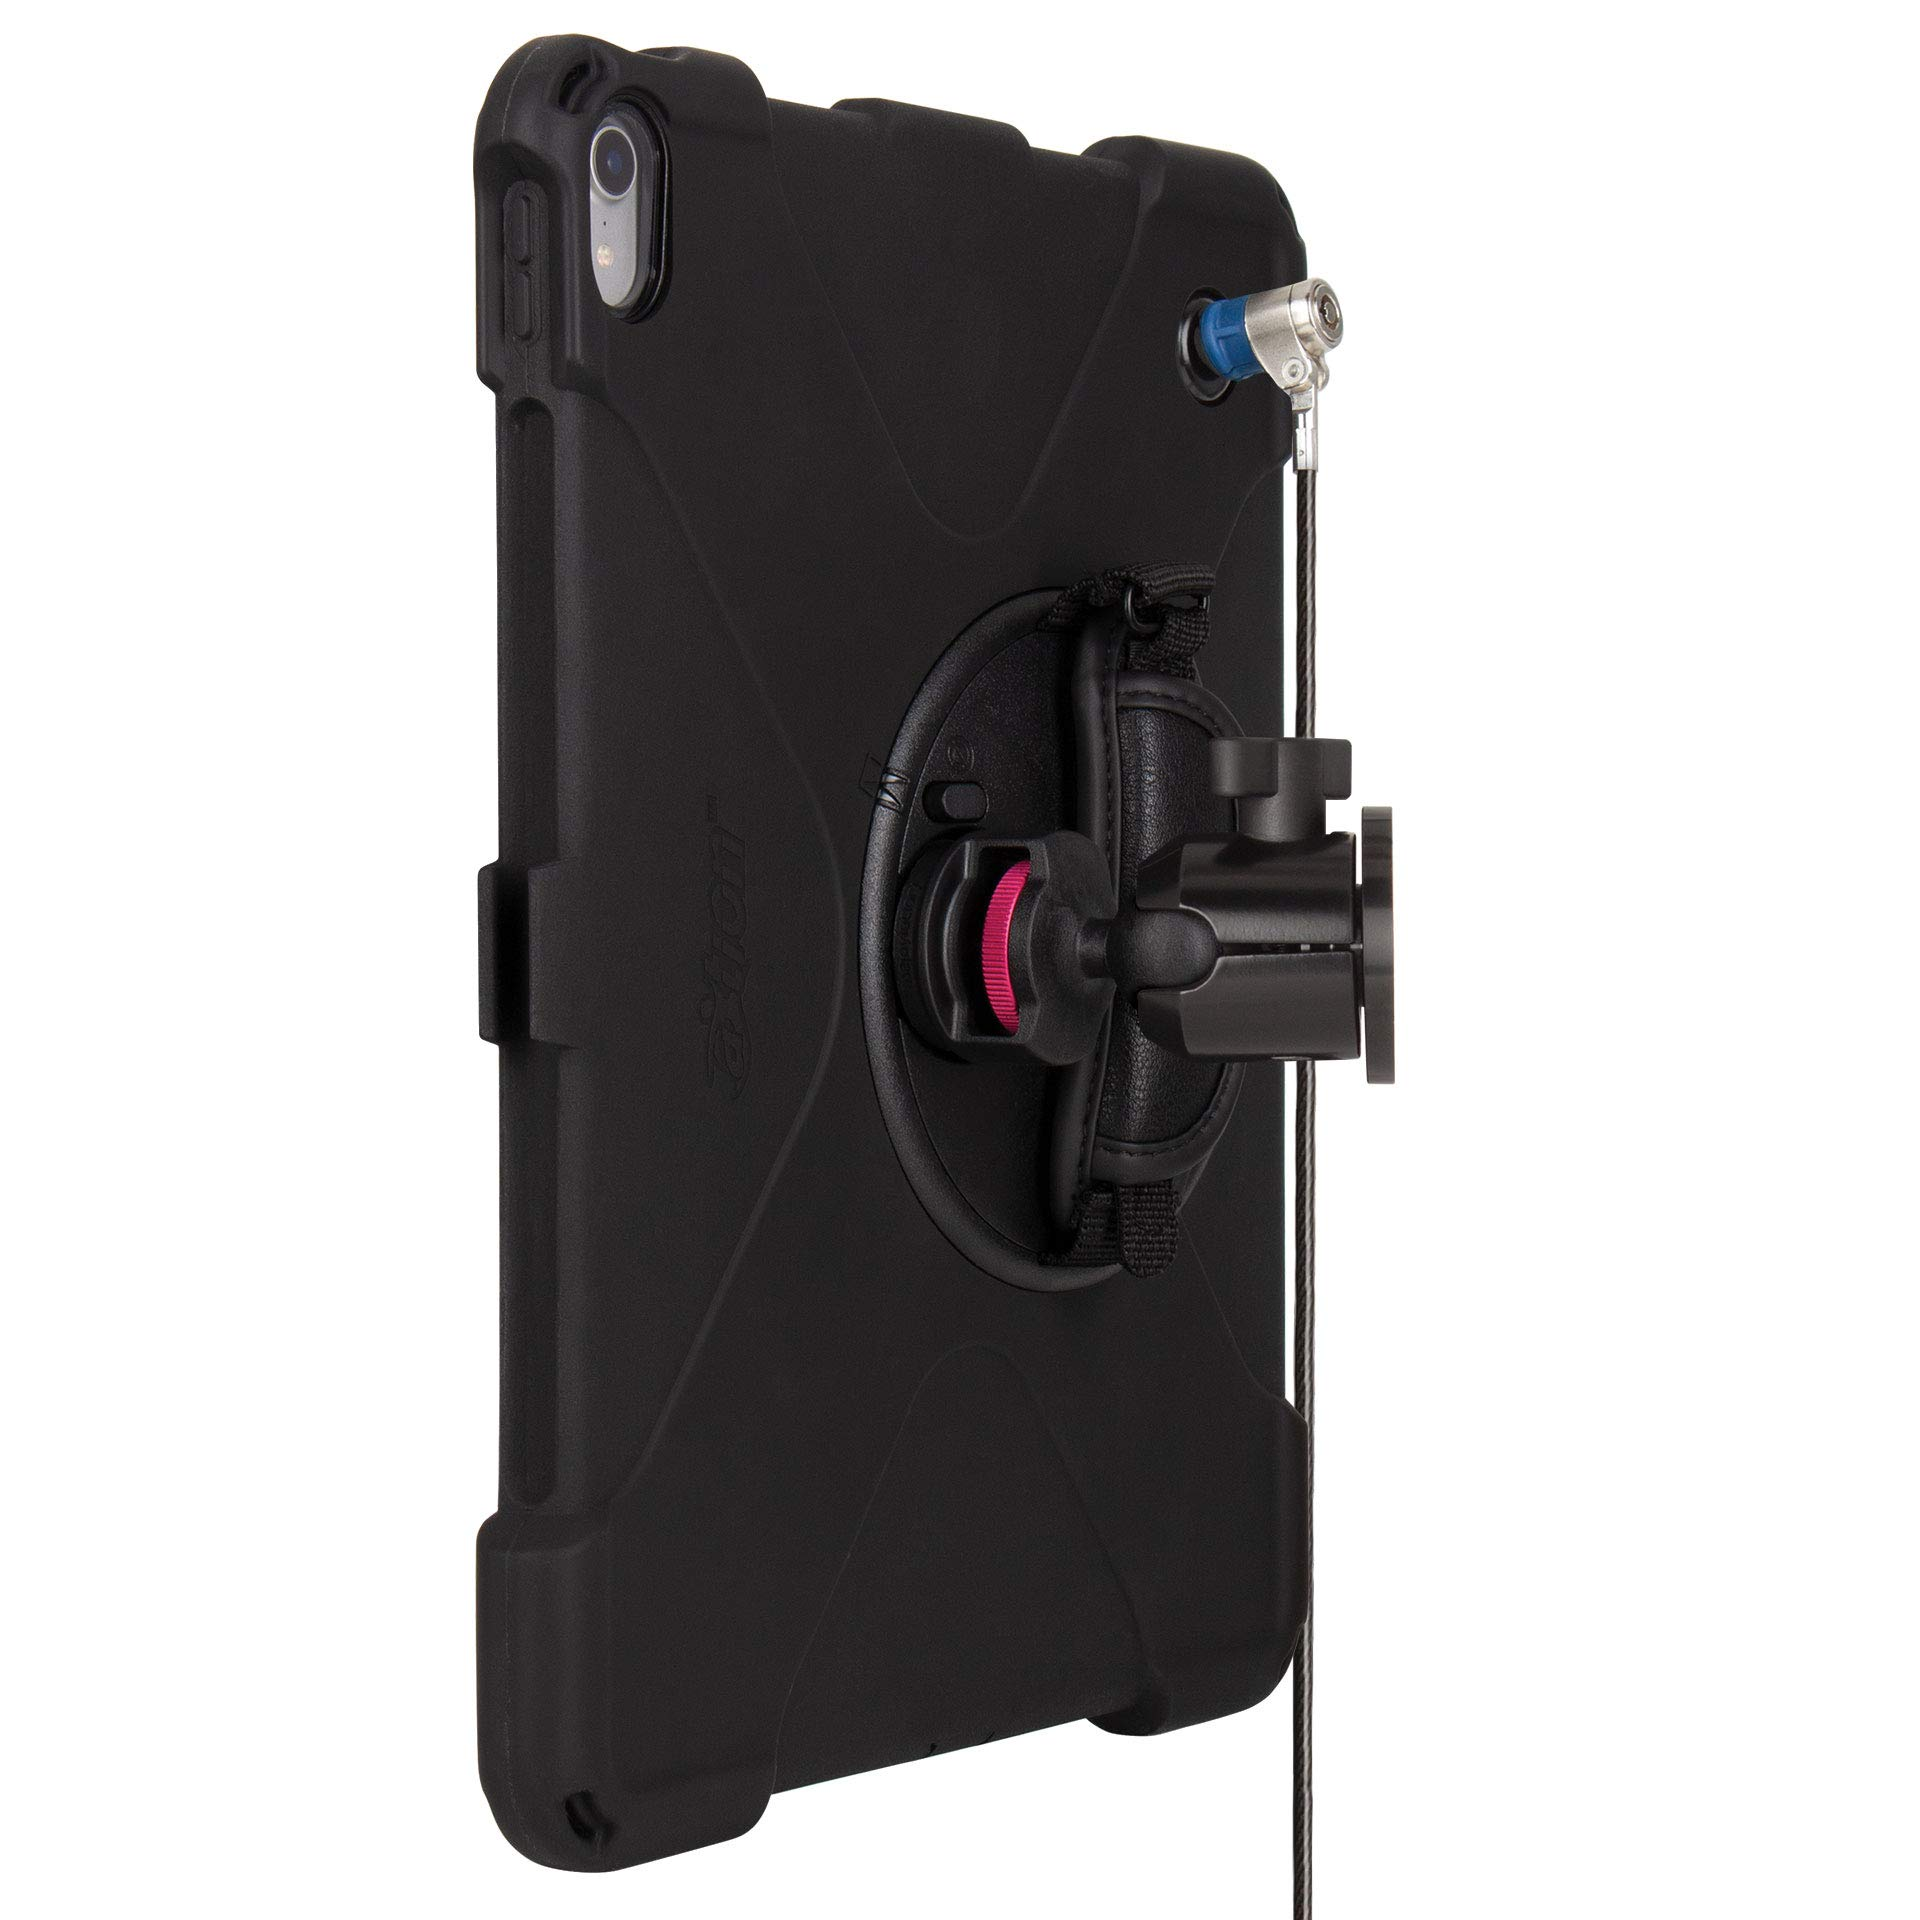 The Joy Factory MagConnect On-Wall Mount with aXtion Bold MPS Water-Resistant Rugged Security Cable Lock Case for iPad Pro 12.9'' [3rd Gen] Built-In Screen Protector, Hand Strap, Kickstand (MWA4115MPS)